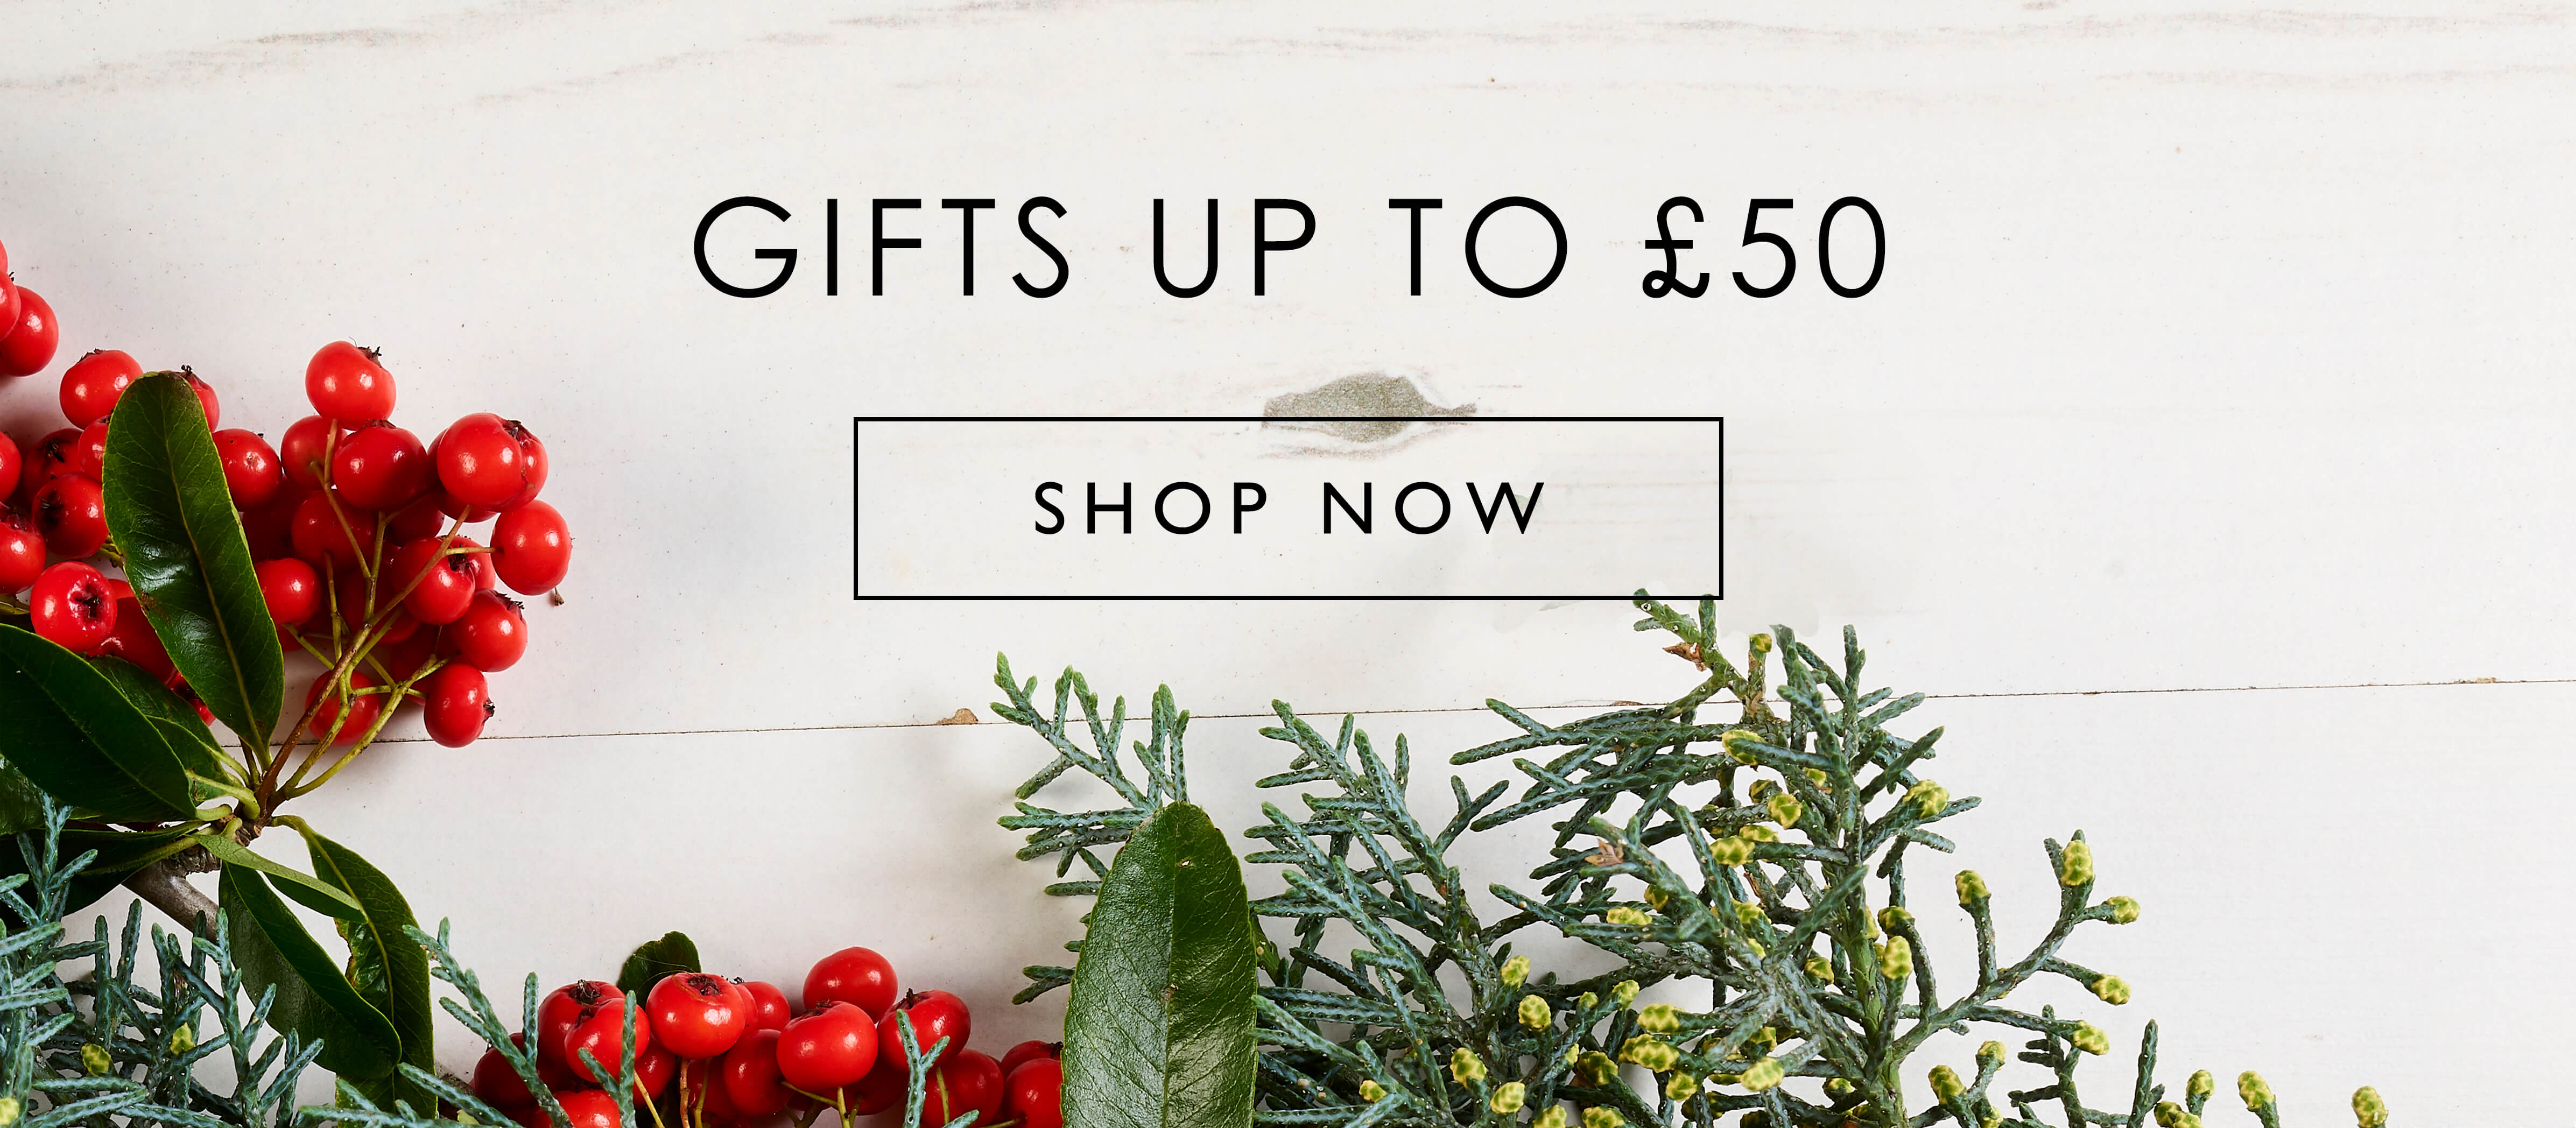 Gifts Up To £50